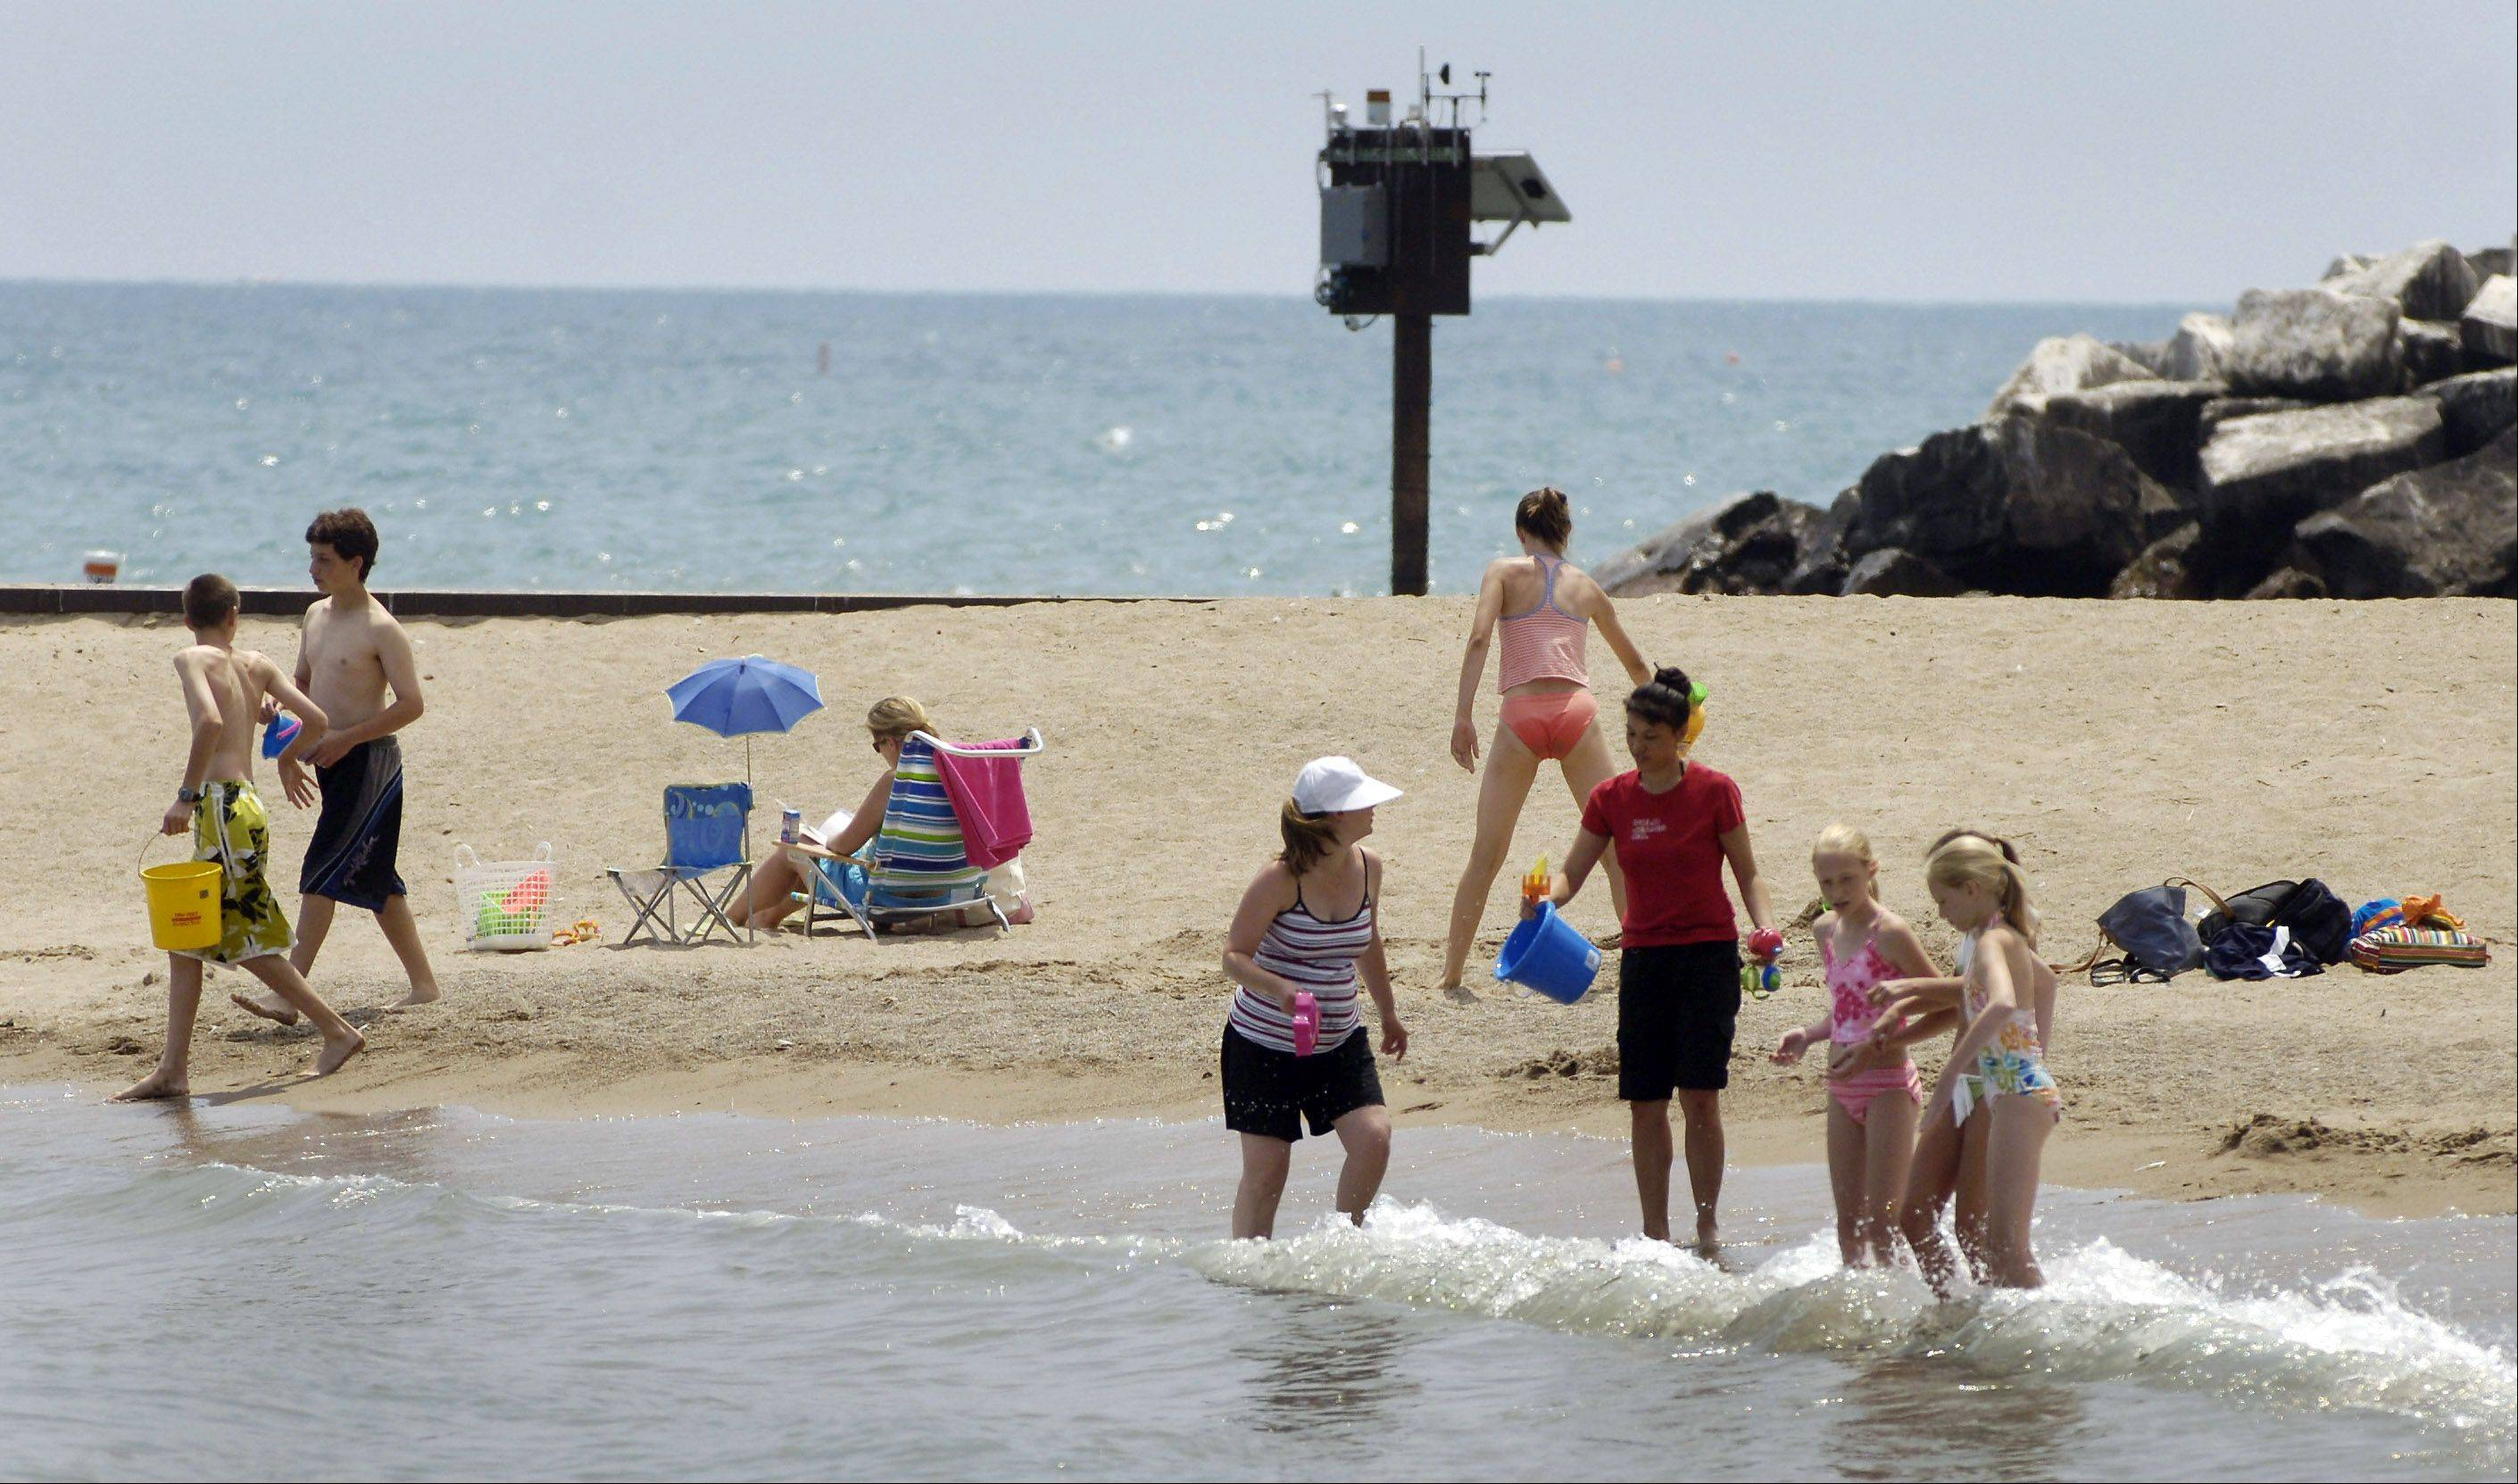 DAILY HERALDRip currents are particularly common on Lake Michigan, where the find sand makes underwater sandbars vulnerable to washouts that can allow the outflowing of water.